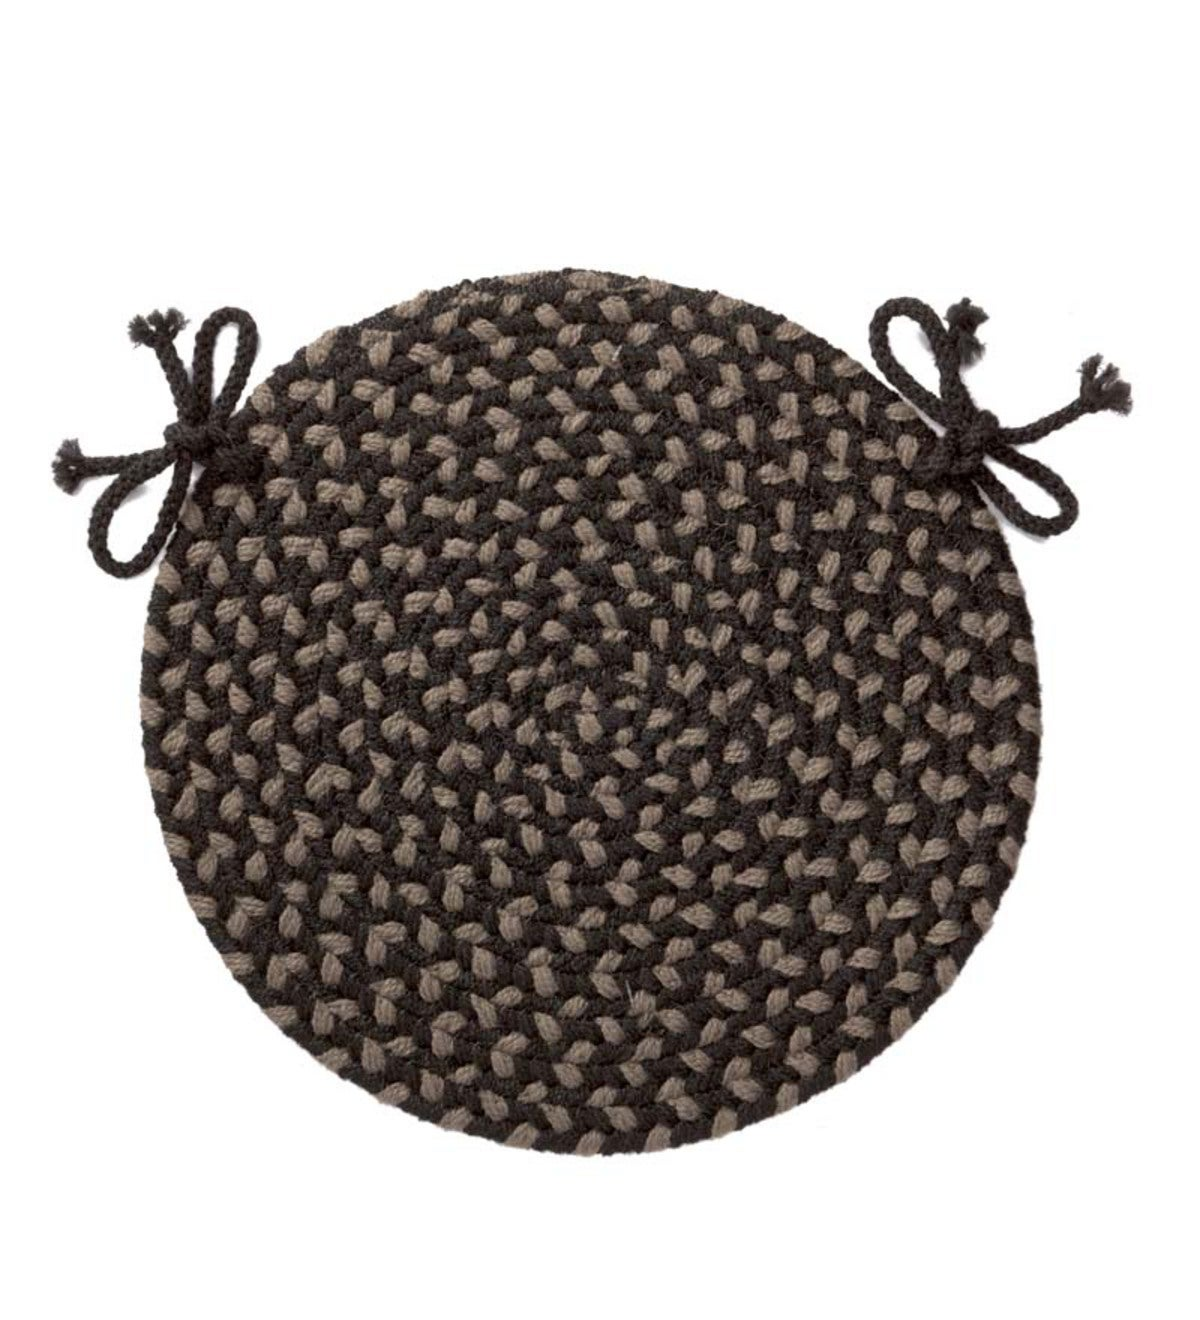 Indoor/Outdoor Braided Polypro Roanoke Round Chair Pad with Ties - Black Multi